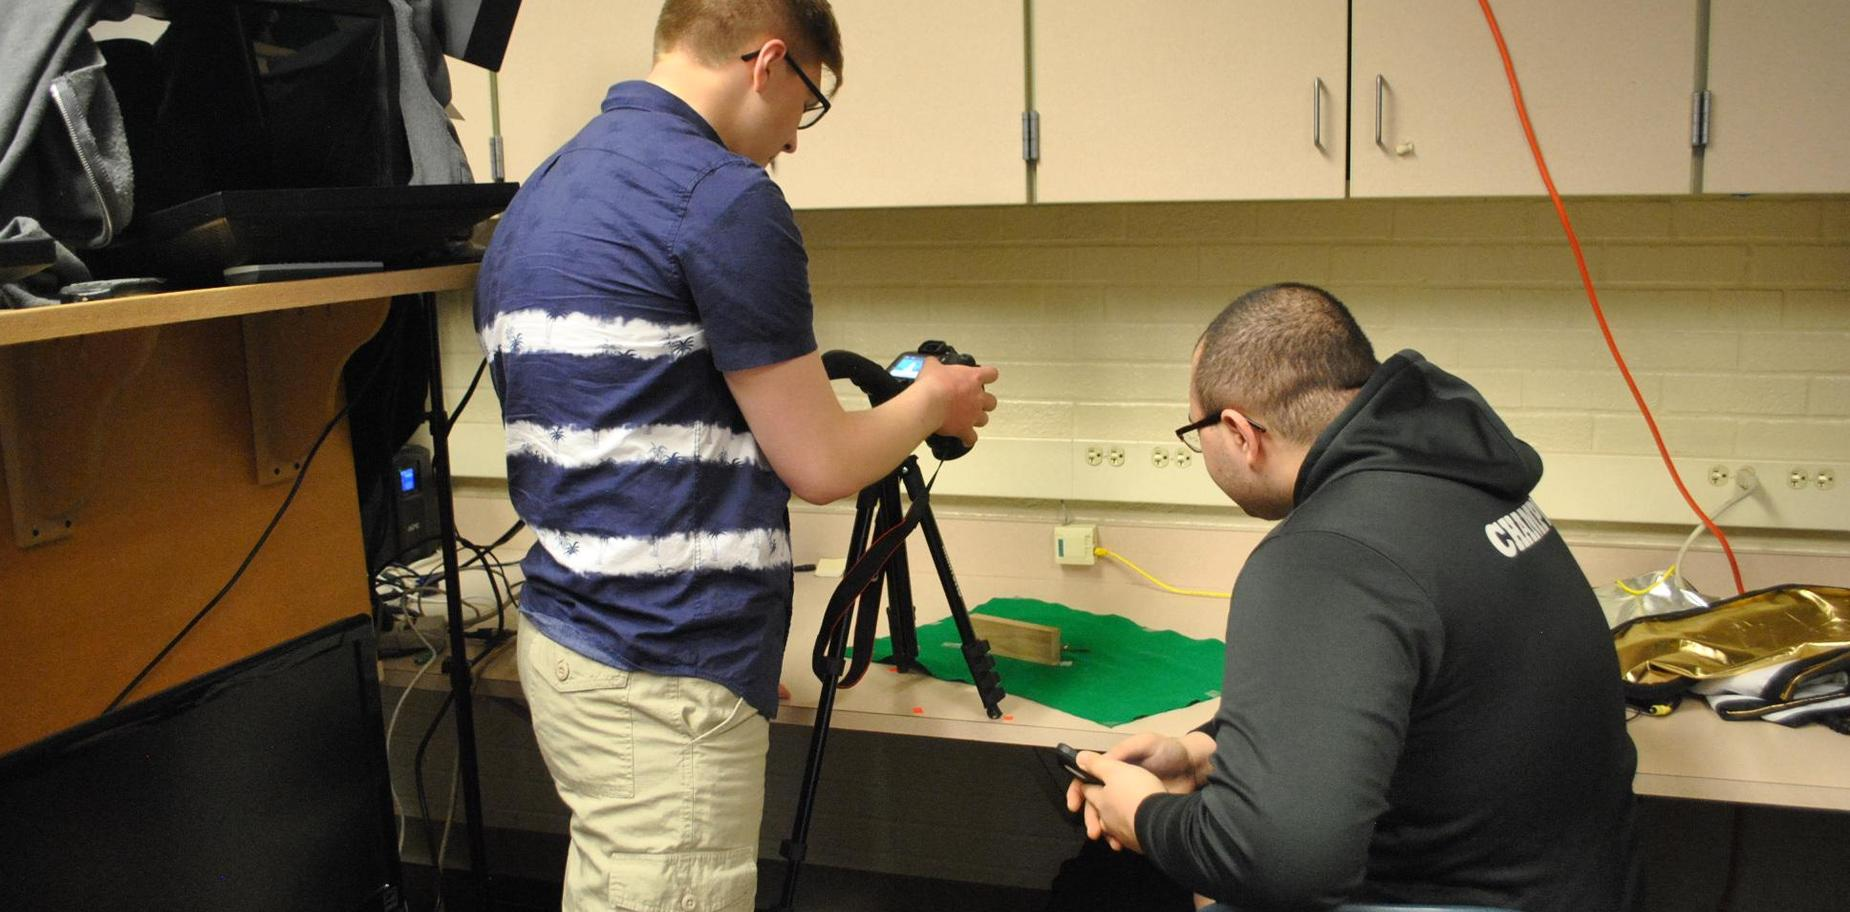 Students in Video Production class